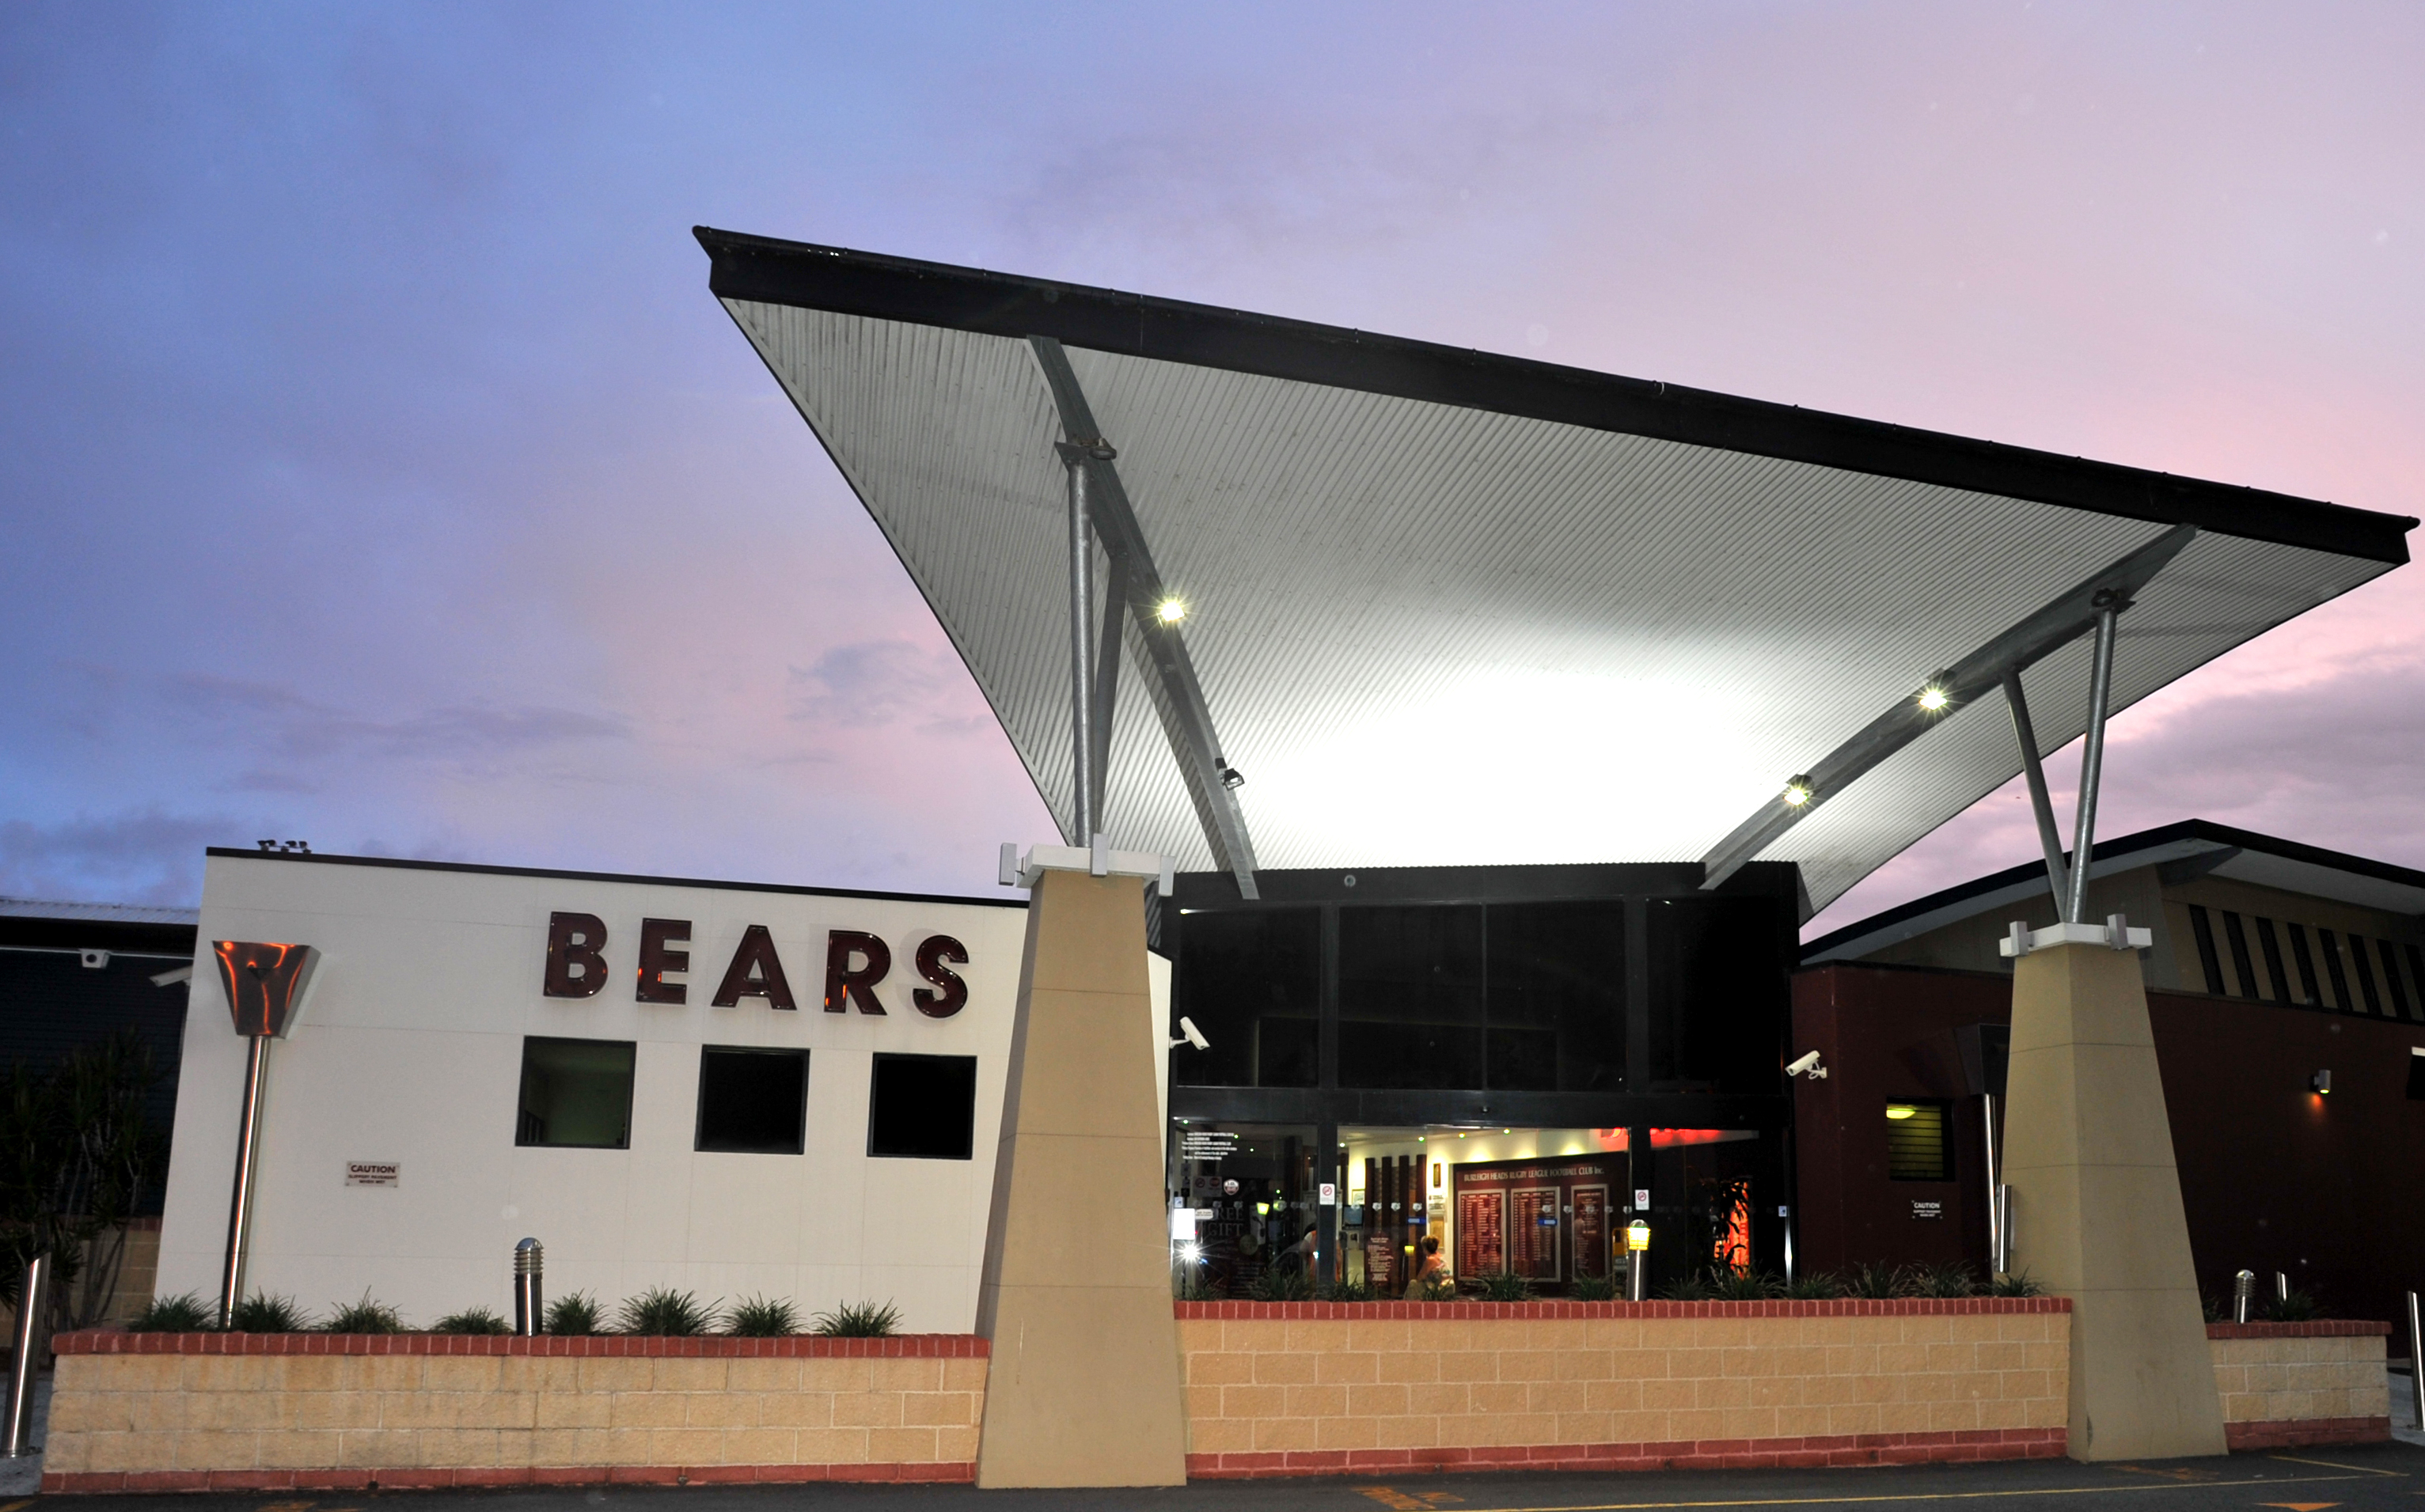 Burleigh Bears - Tweed Heads Accommodation